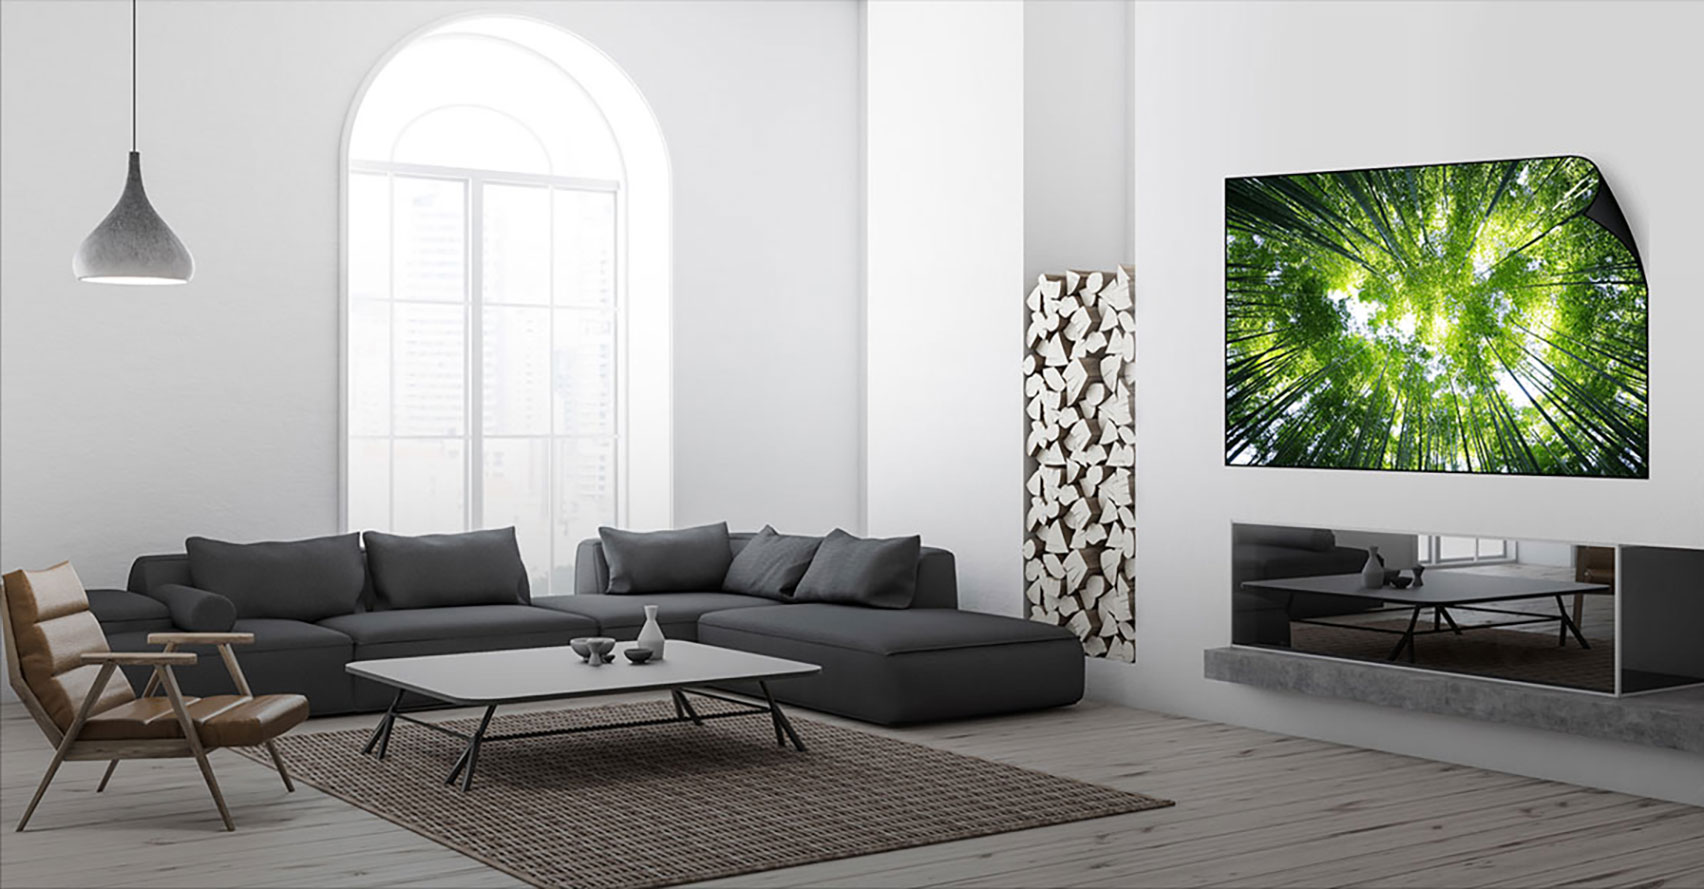 Render of a flexible OLED television by LG Display